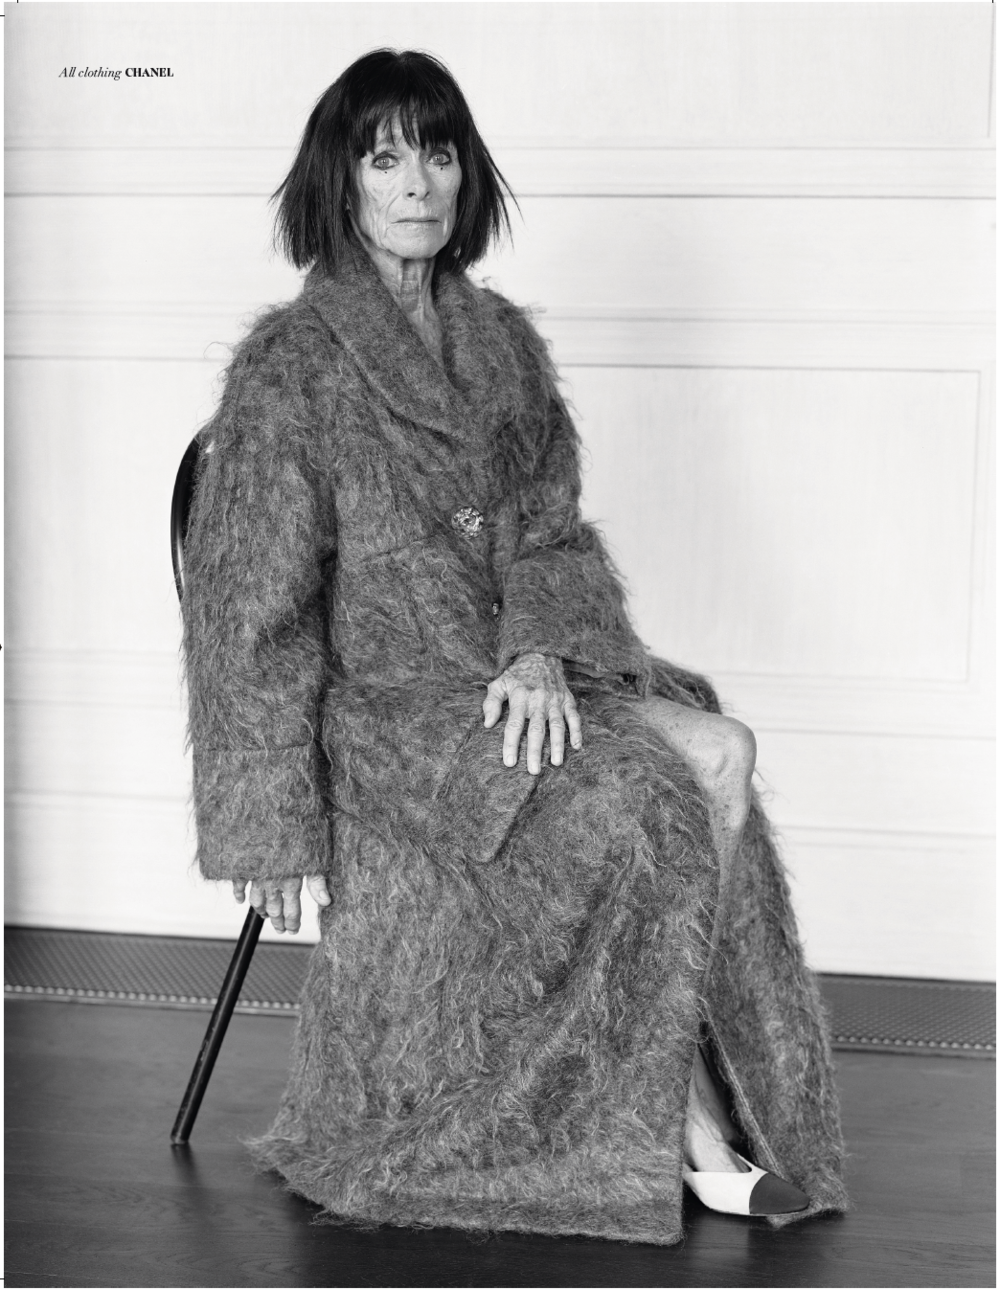 Geraldine Chaplin in Violet Issue 4 - ph. Thomas Hauser